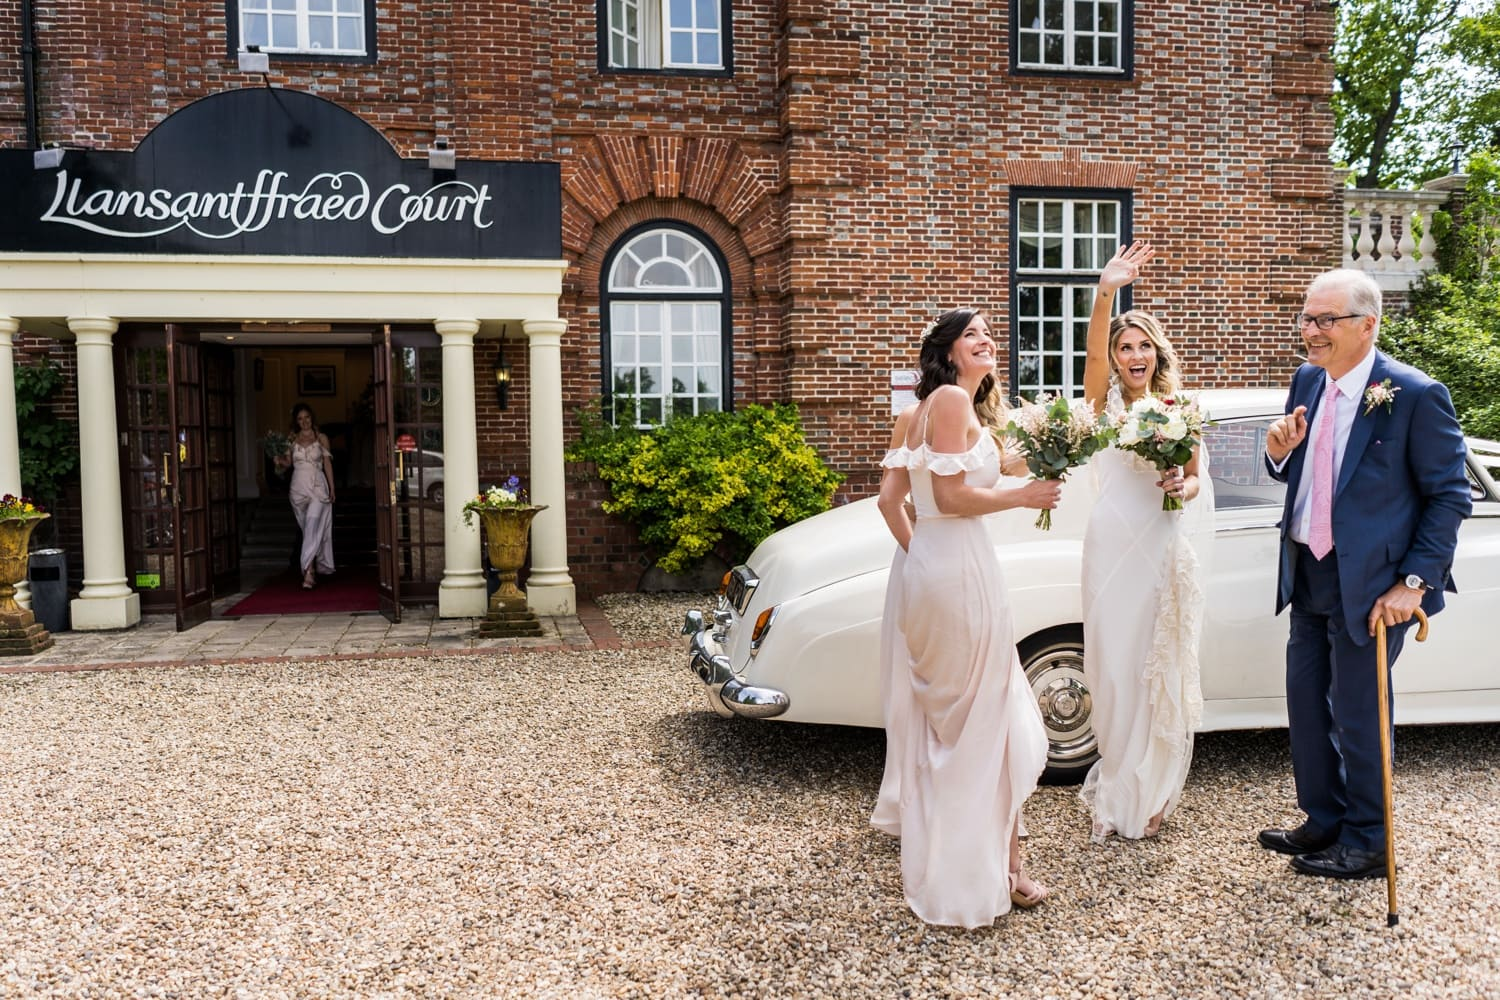 Bride arrives at Llansantffraed Court in white Rolls Royce